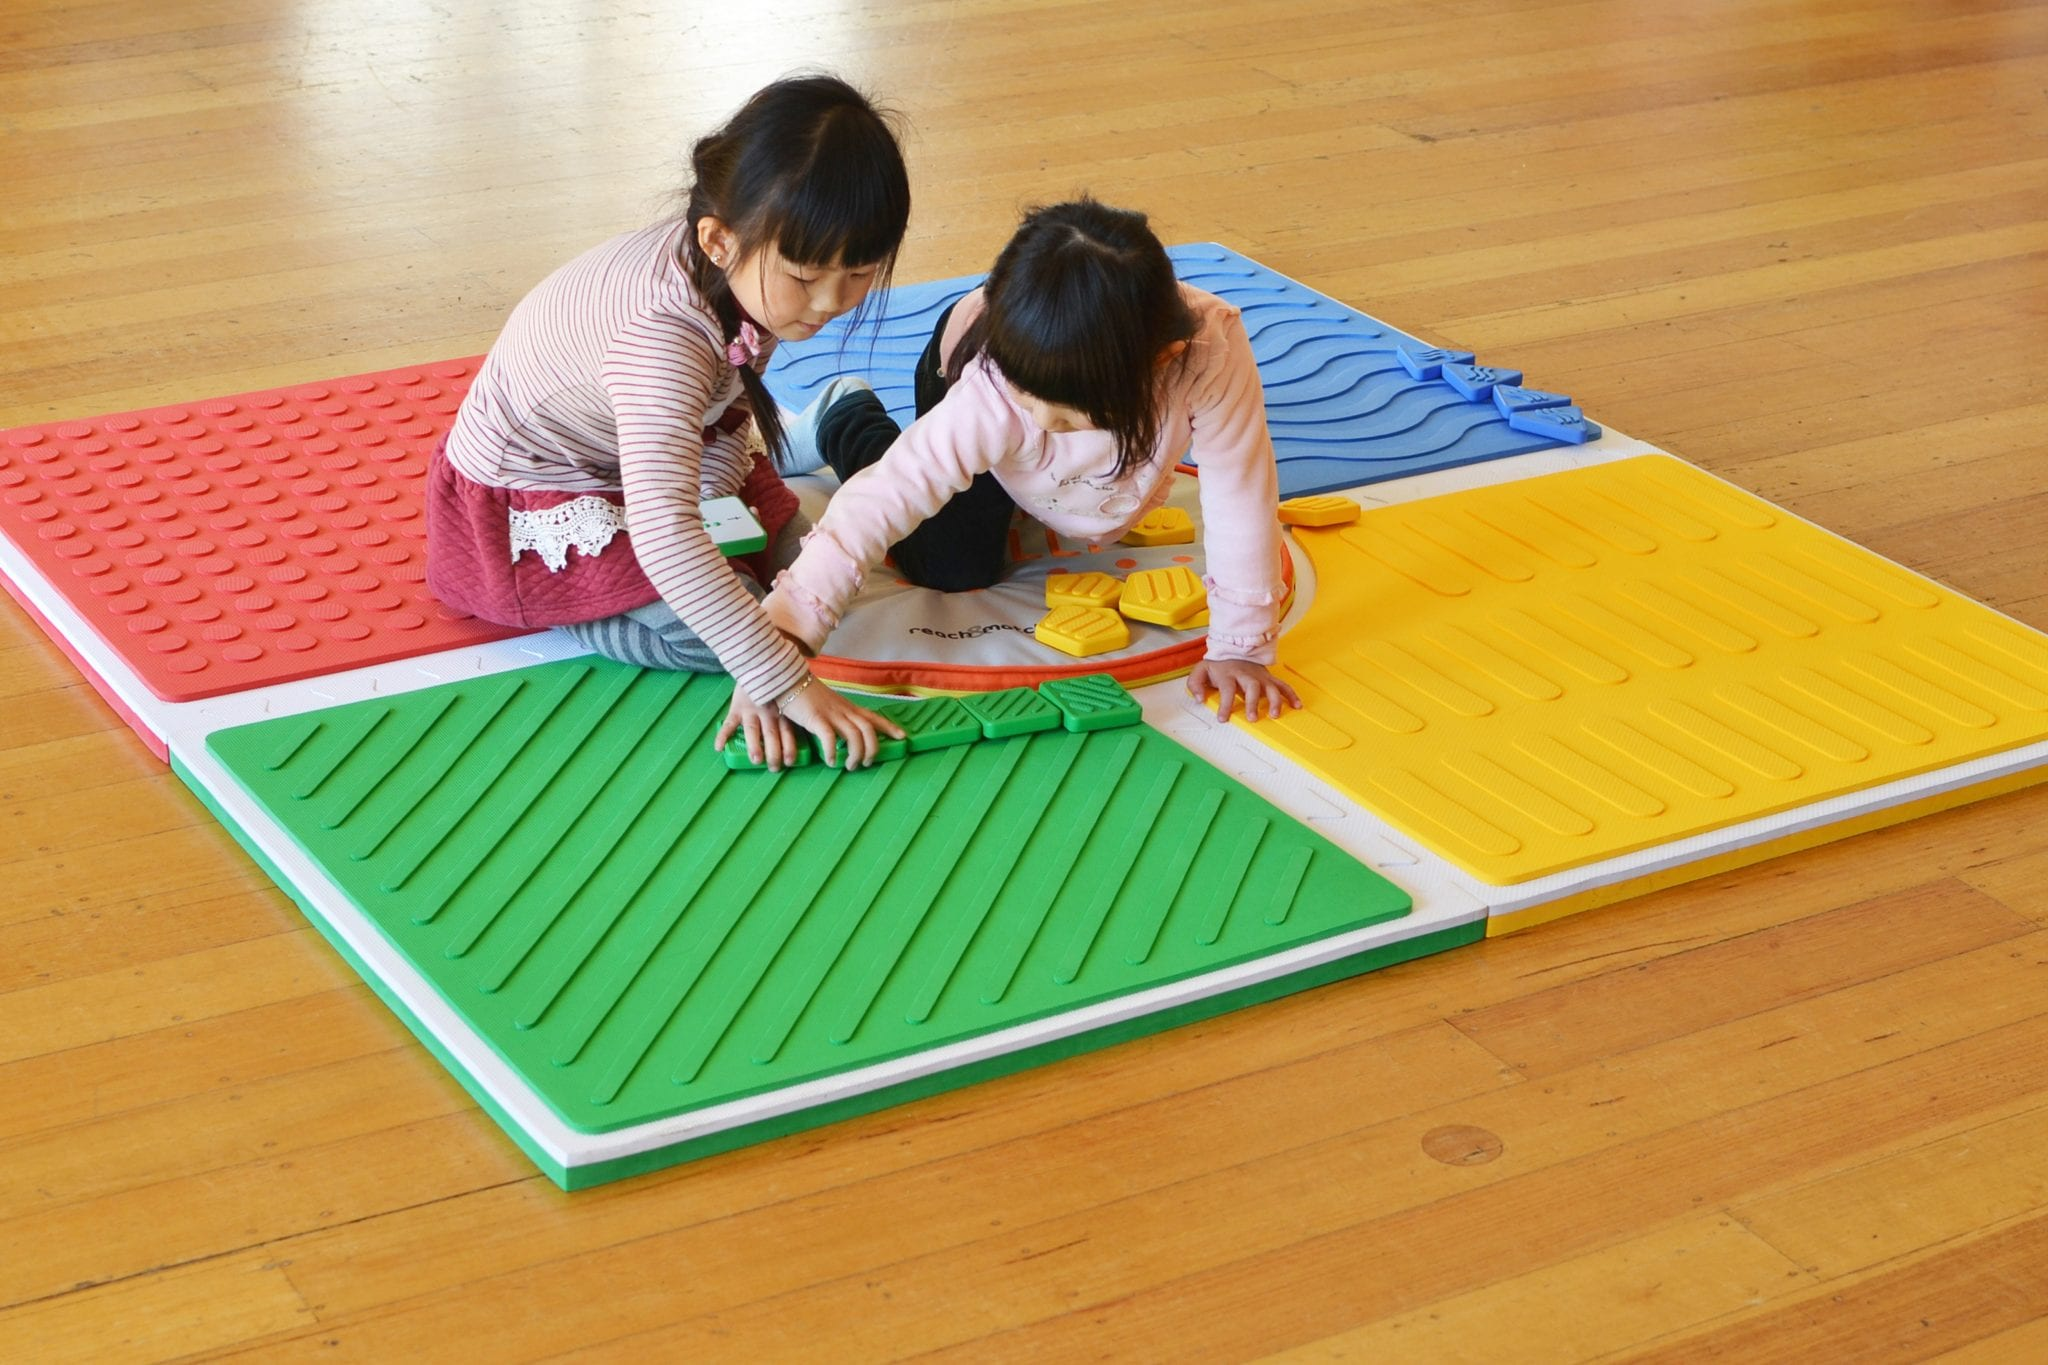 Two young girls playing on Reach & Match mat